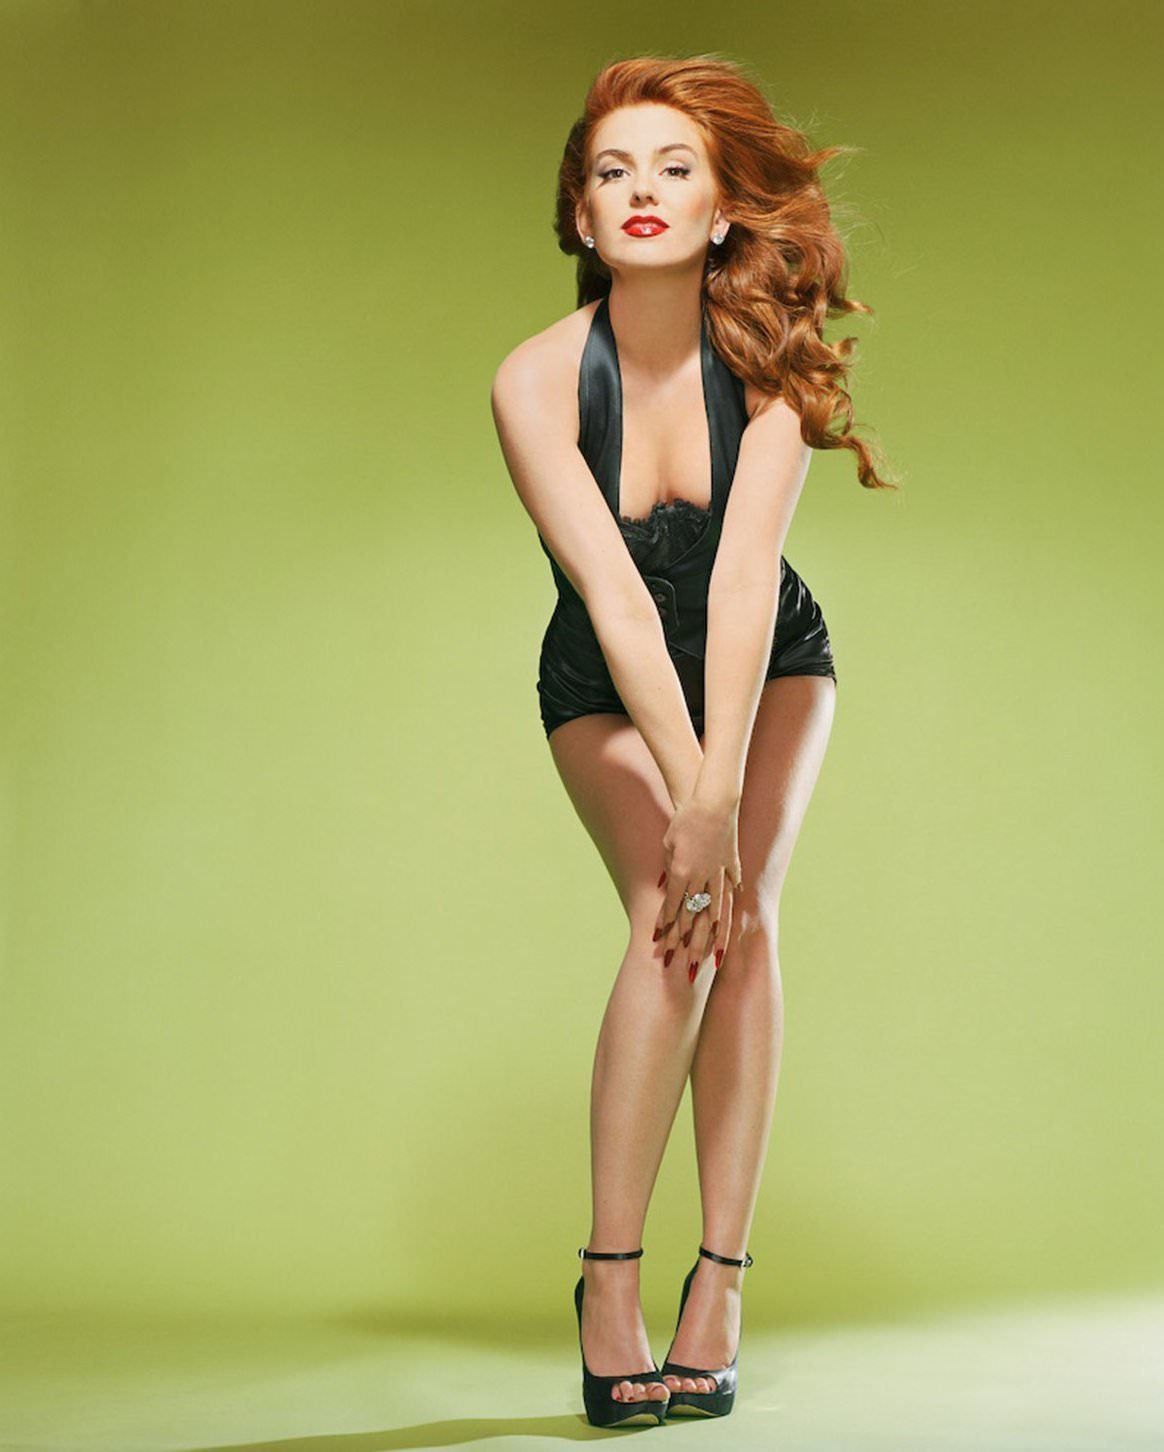 Isla fisher beauty girls pinterest